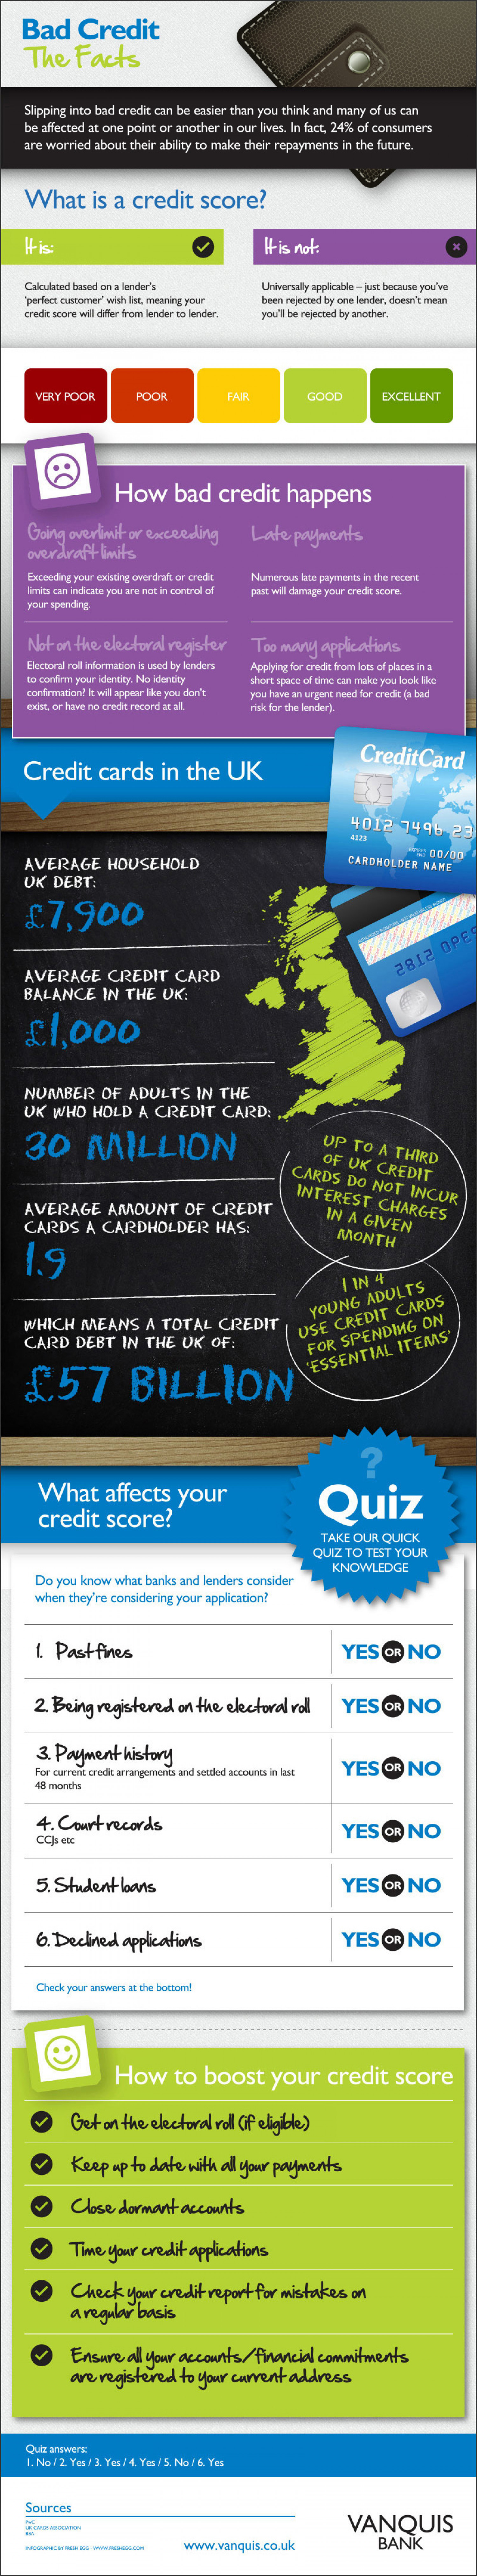 Bad Credit - The Facts Infographic